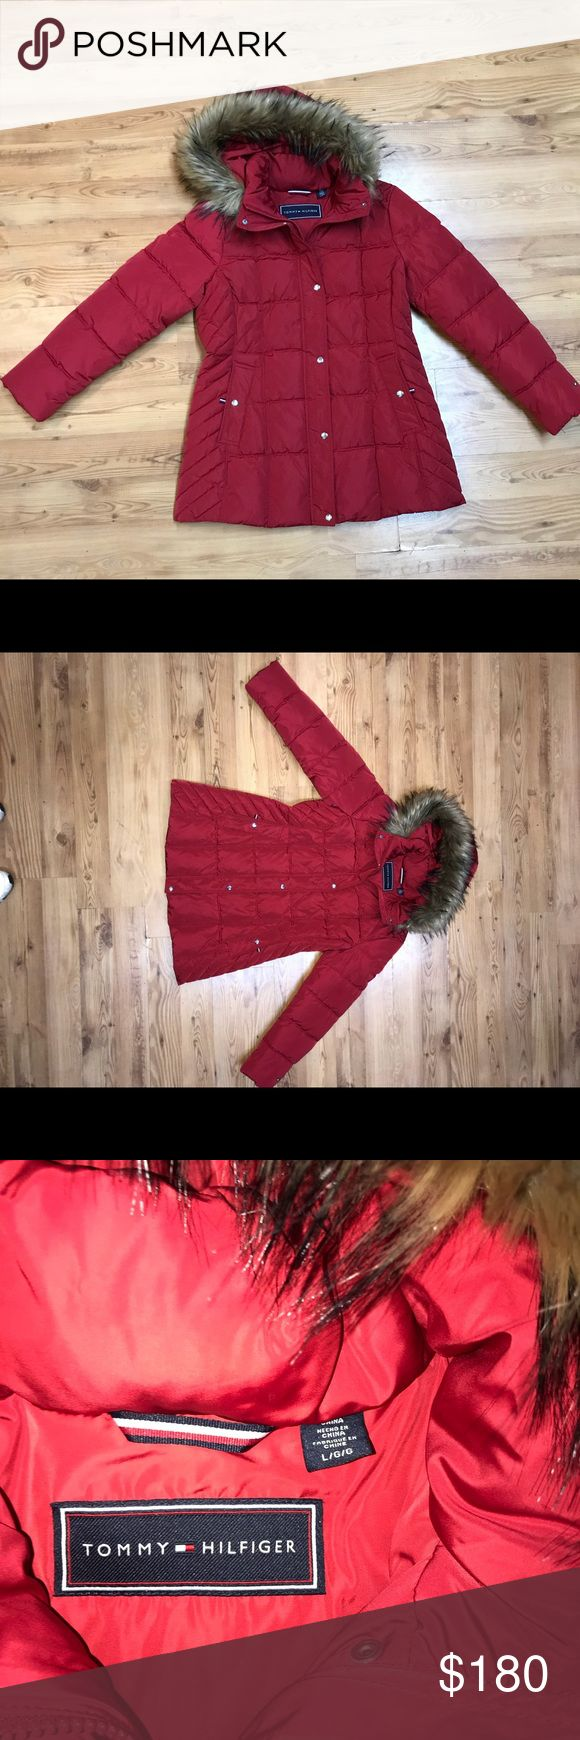 Women's Tommy Hilfiger down Jacket with fur hood Women's Tommy Hilfiger down Jacket with fur hood  Hood is detachable   NWOT Tommy Hilfiger Jackets & Coats Puffers